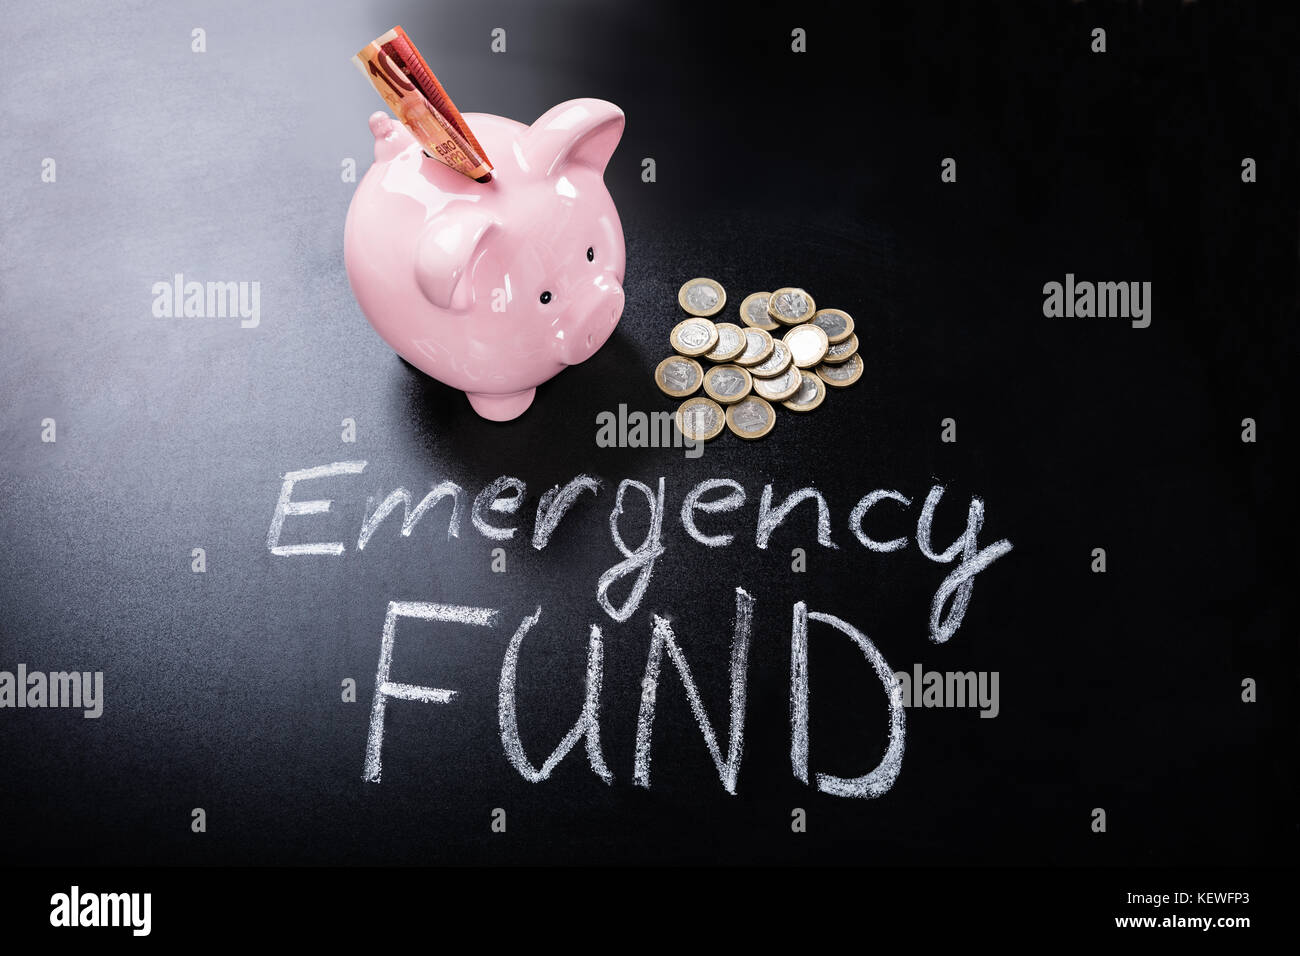 Emergency Fund Text In Front Of Piggybank With Banknotes And Coins - Stock Image